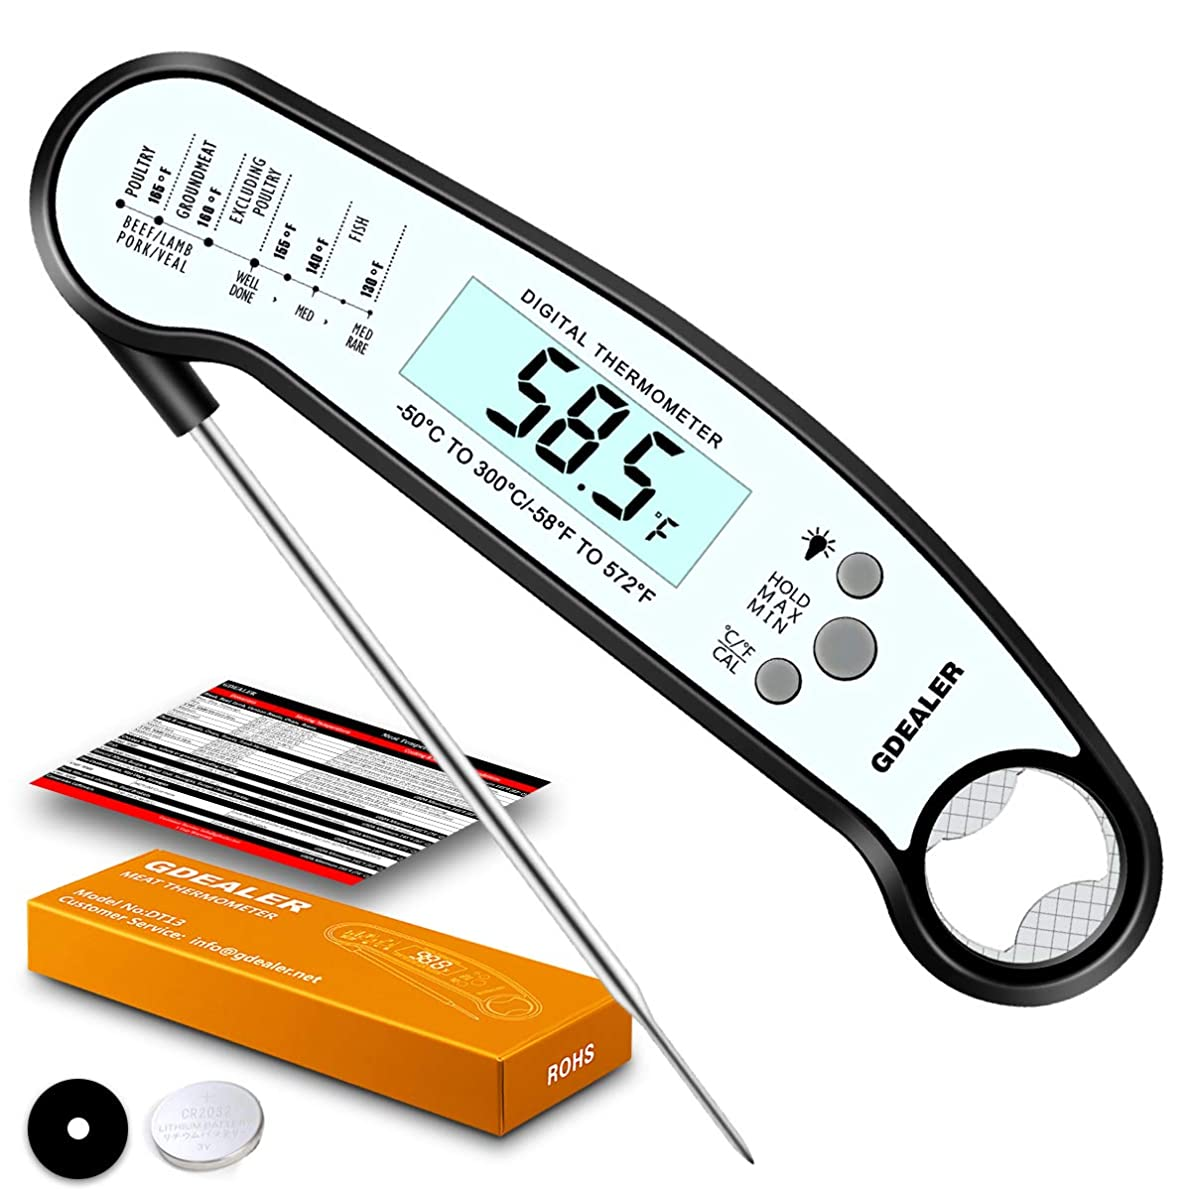 GDEALER DT13 Digital Waterproof Instant Read Meat Thermometer with Backlight Calibration Bottle Opener for Kitchen Cooking Candy Food Grilling BBQ Baking Oil Deep Fly